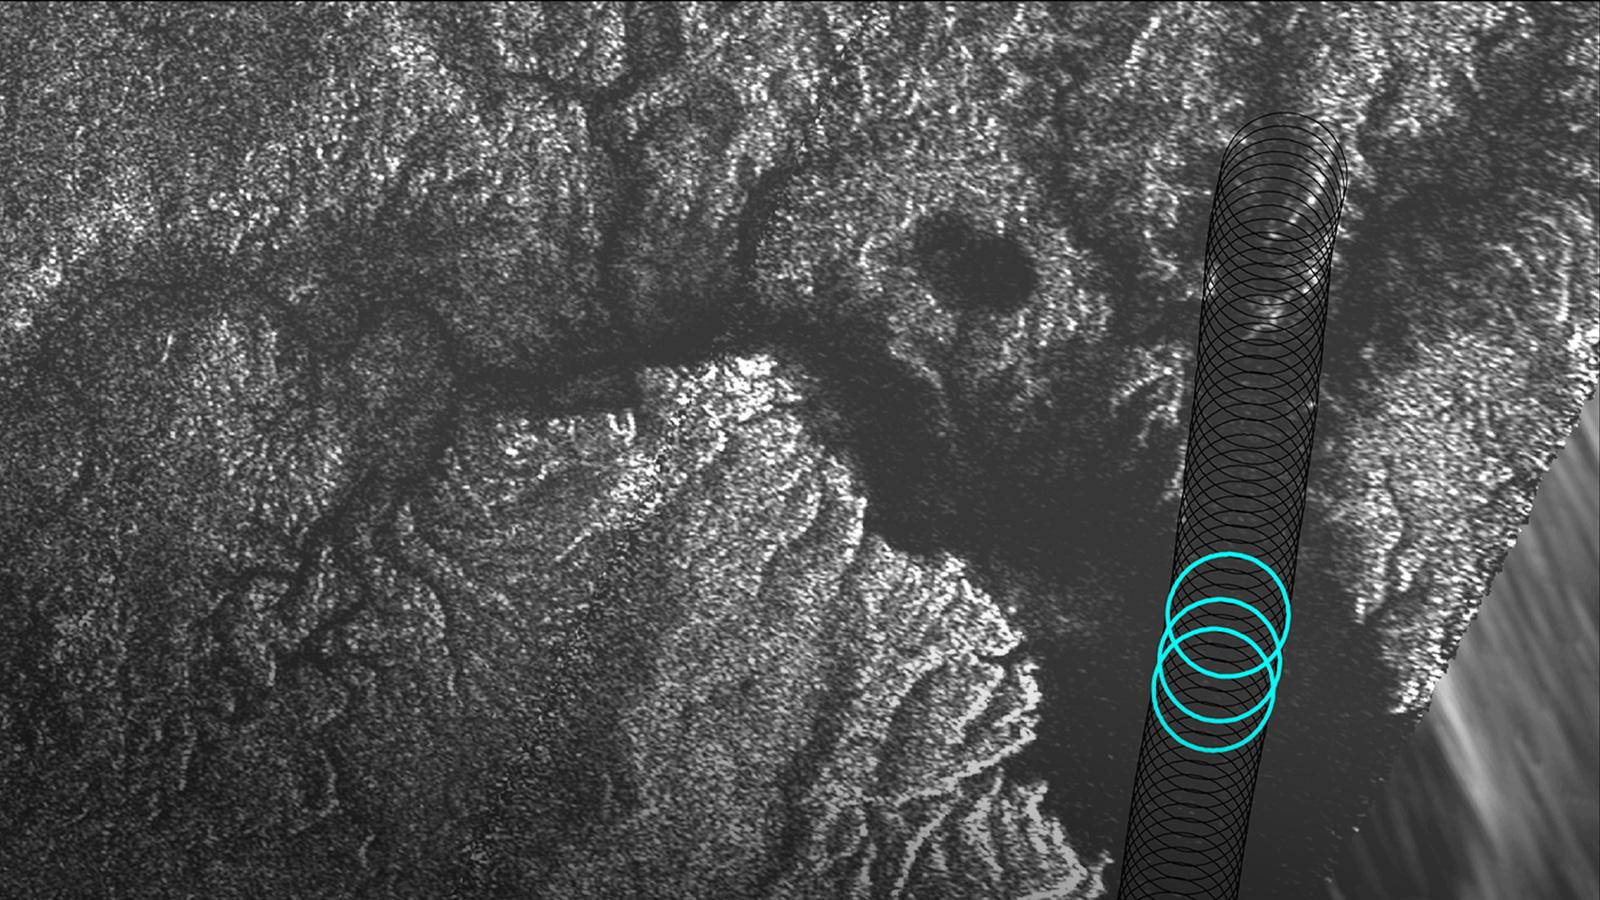 Radar image of Titan